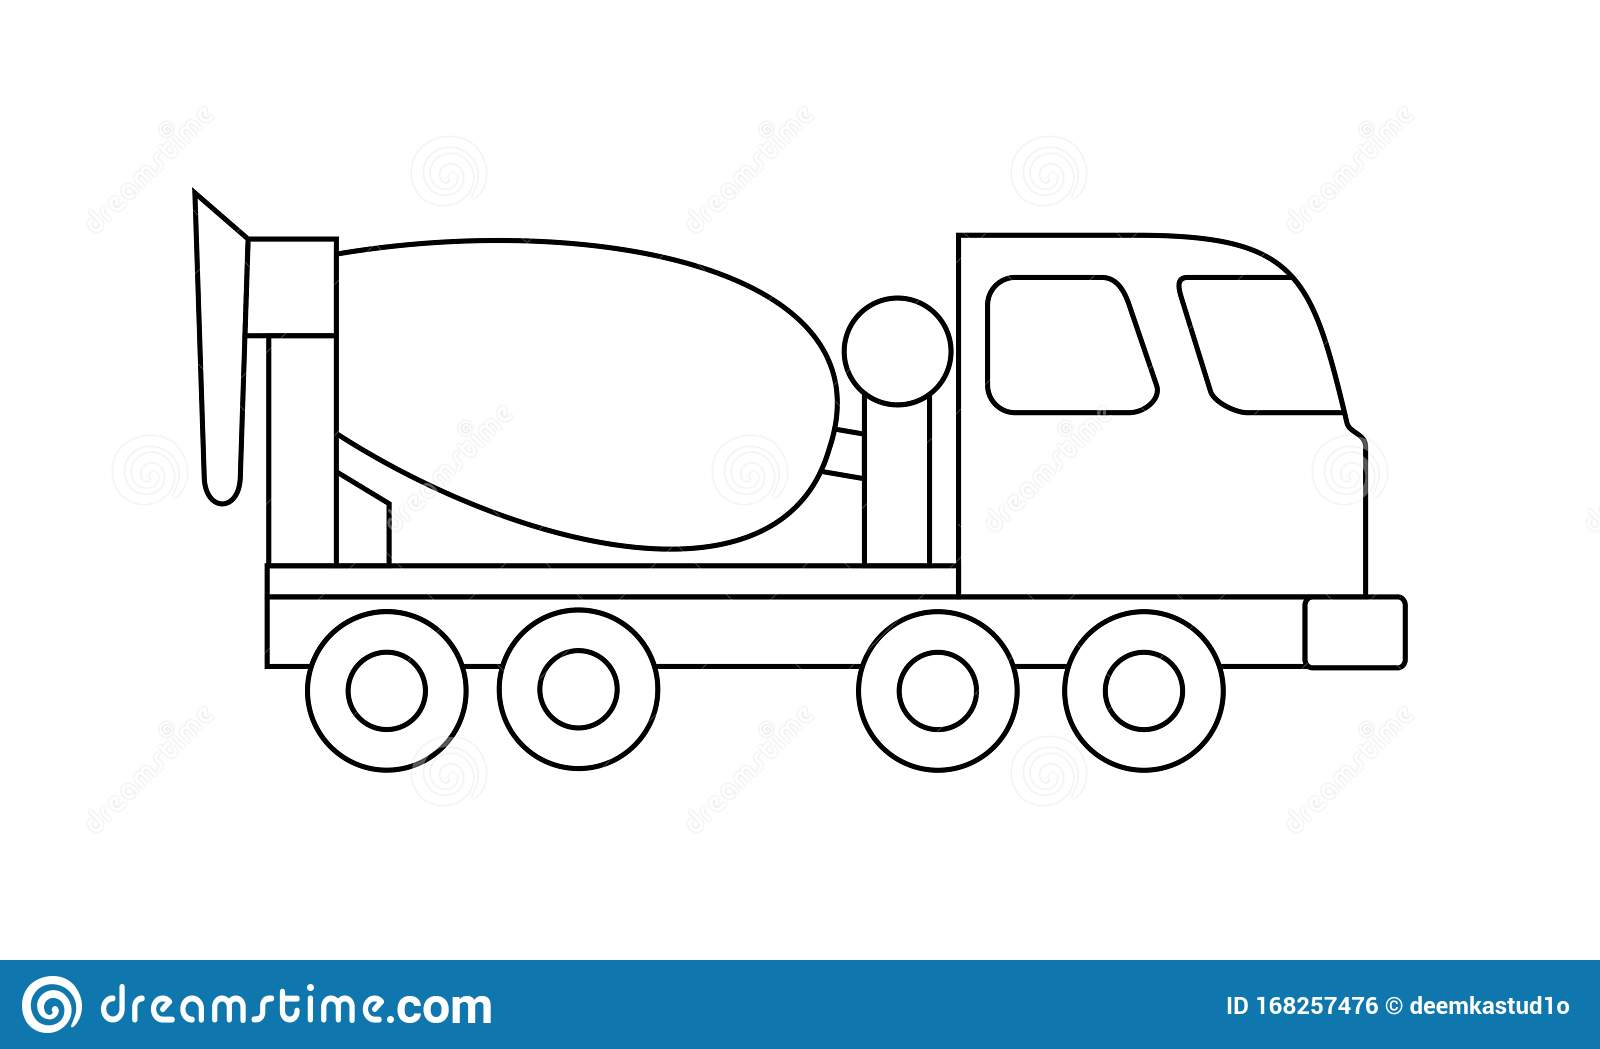 Truck Coloring Book Transportation To Educate Kids. Learn Colors ... | 1049x1600